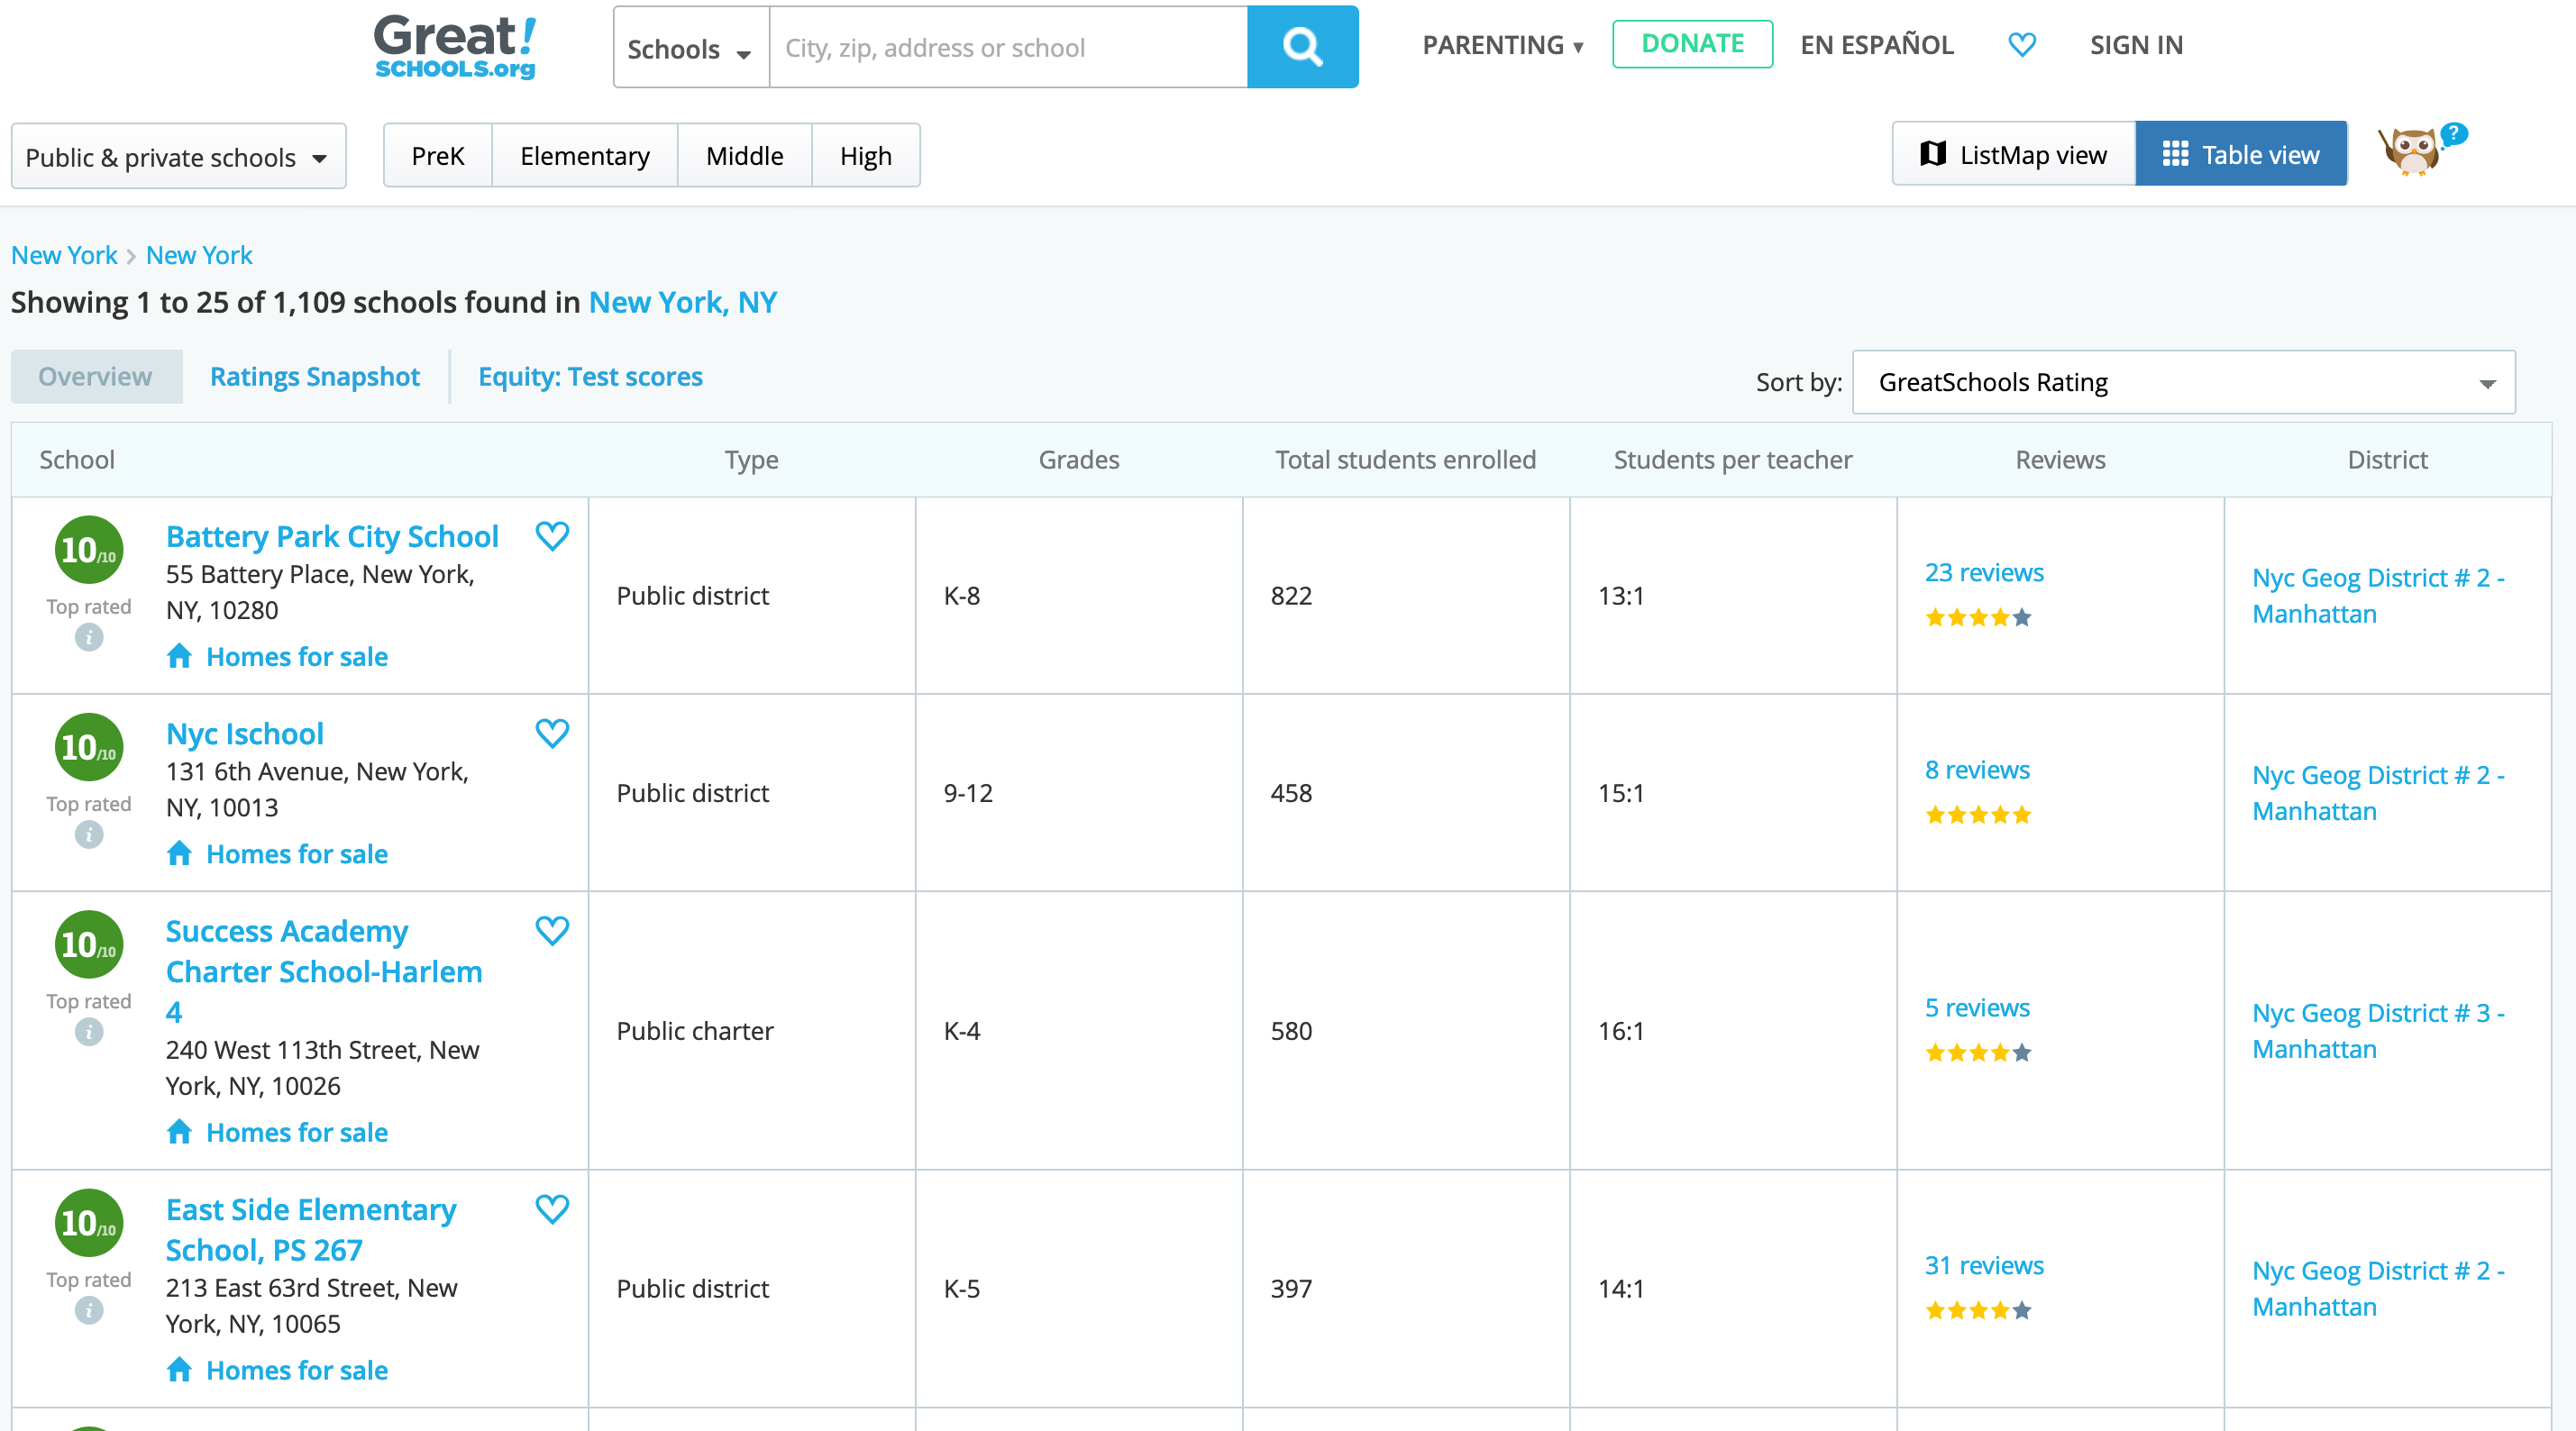 Image of greatschools.org table for New York, NY. https://www.greatschools.org/new-york/new-york/schools/